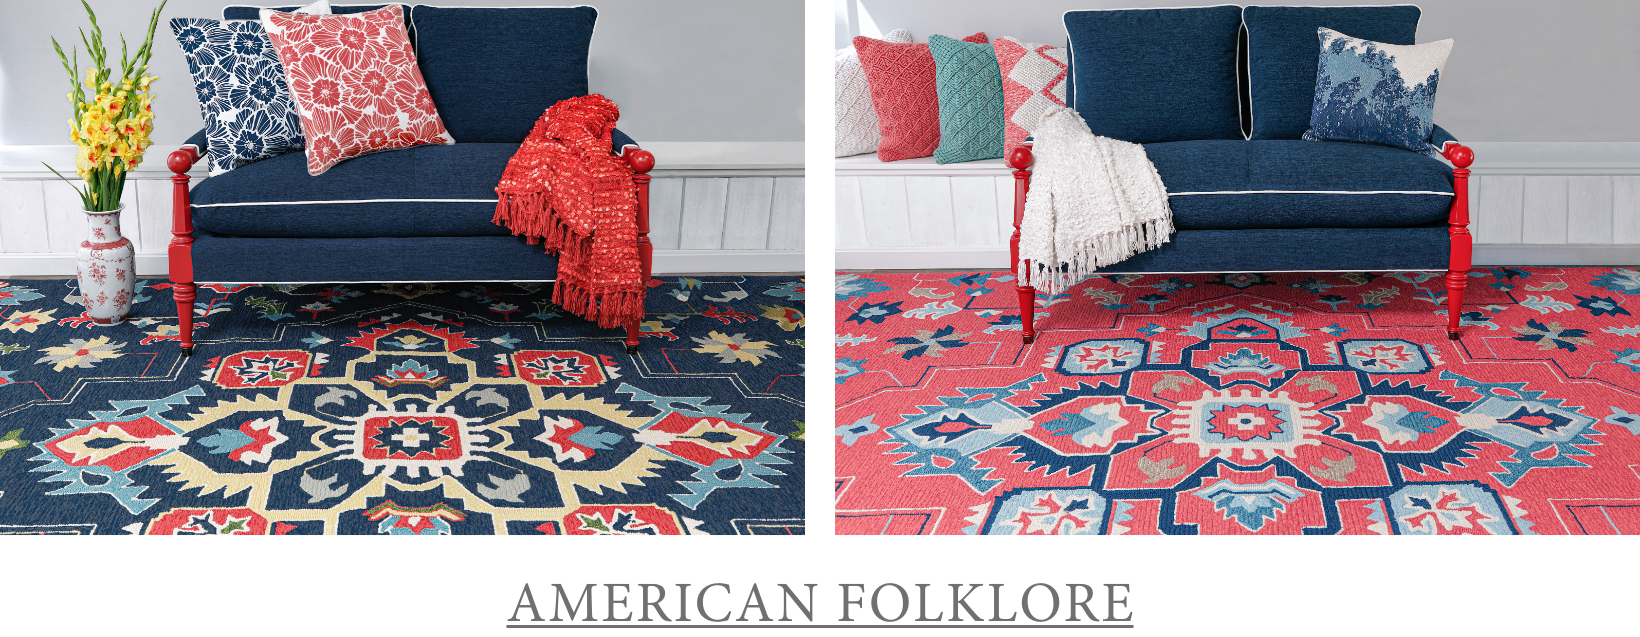 Shop American Folklore Collection - Spring 2020